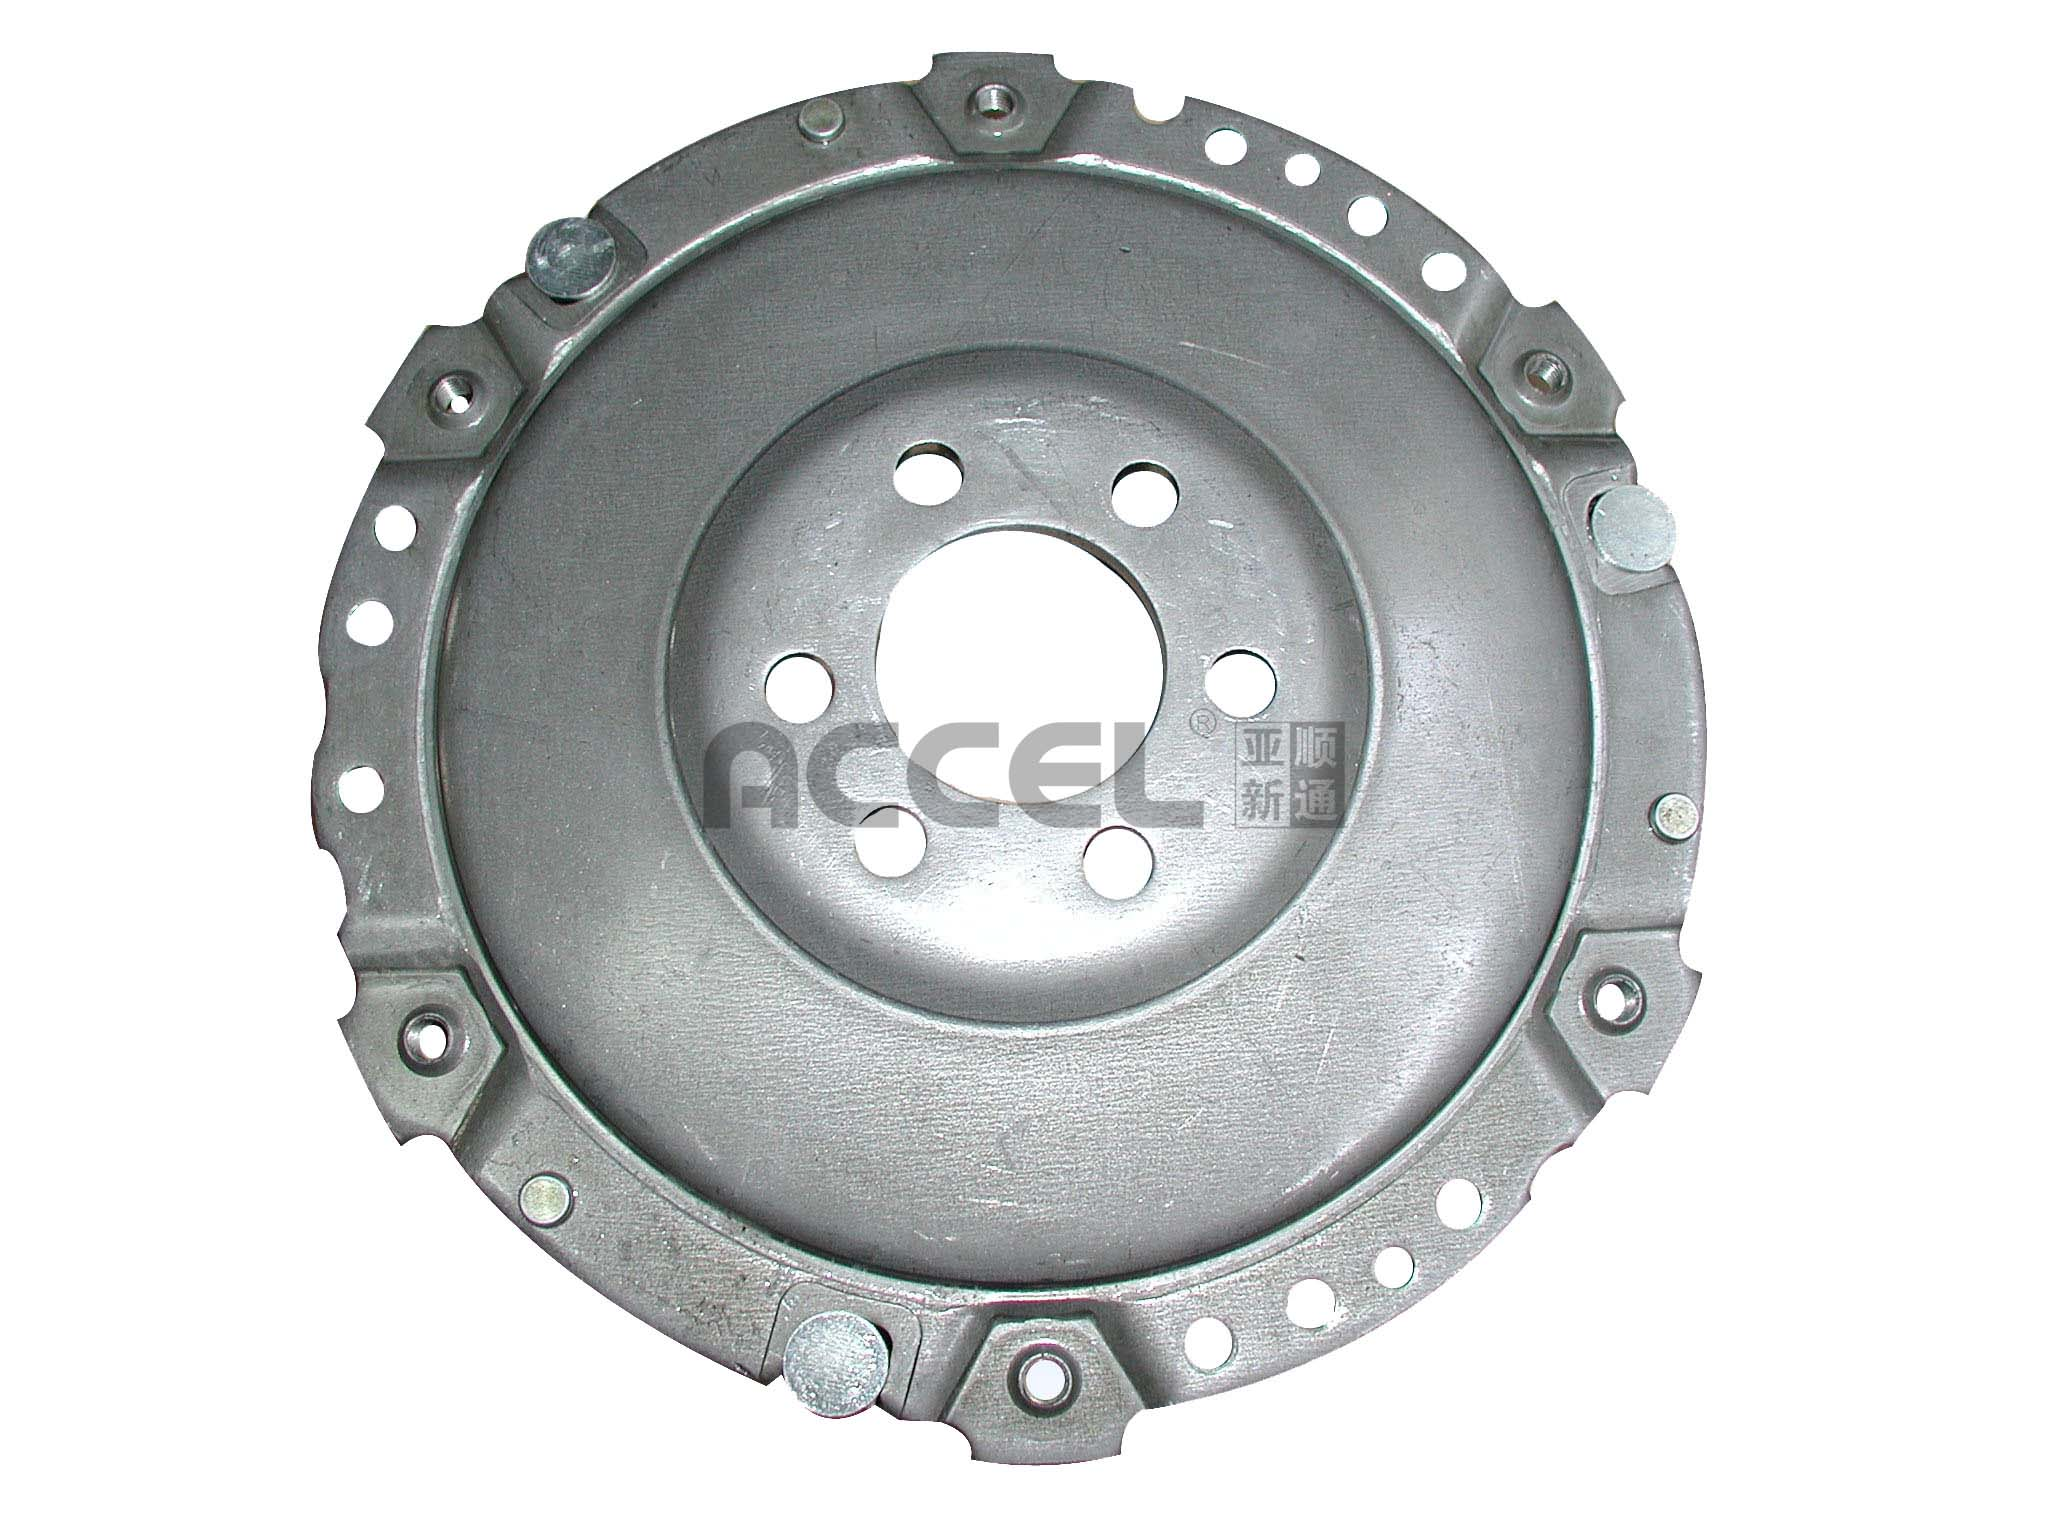 Clutch Cover/OE:NULL/200*132*209/STC-068/OTHERS/LY313